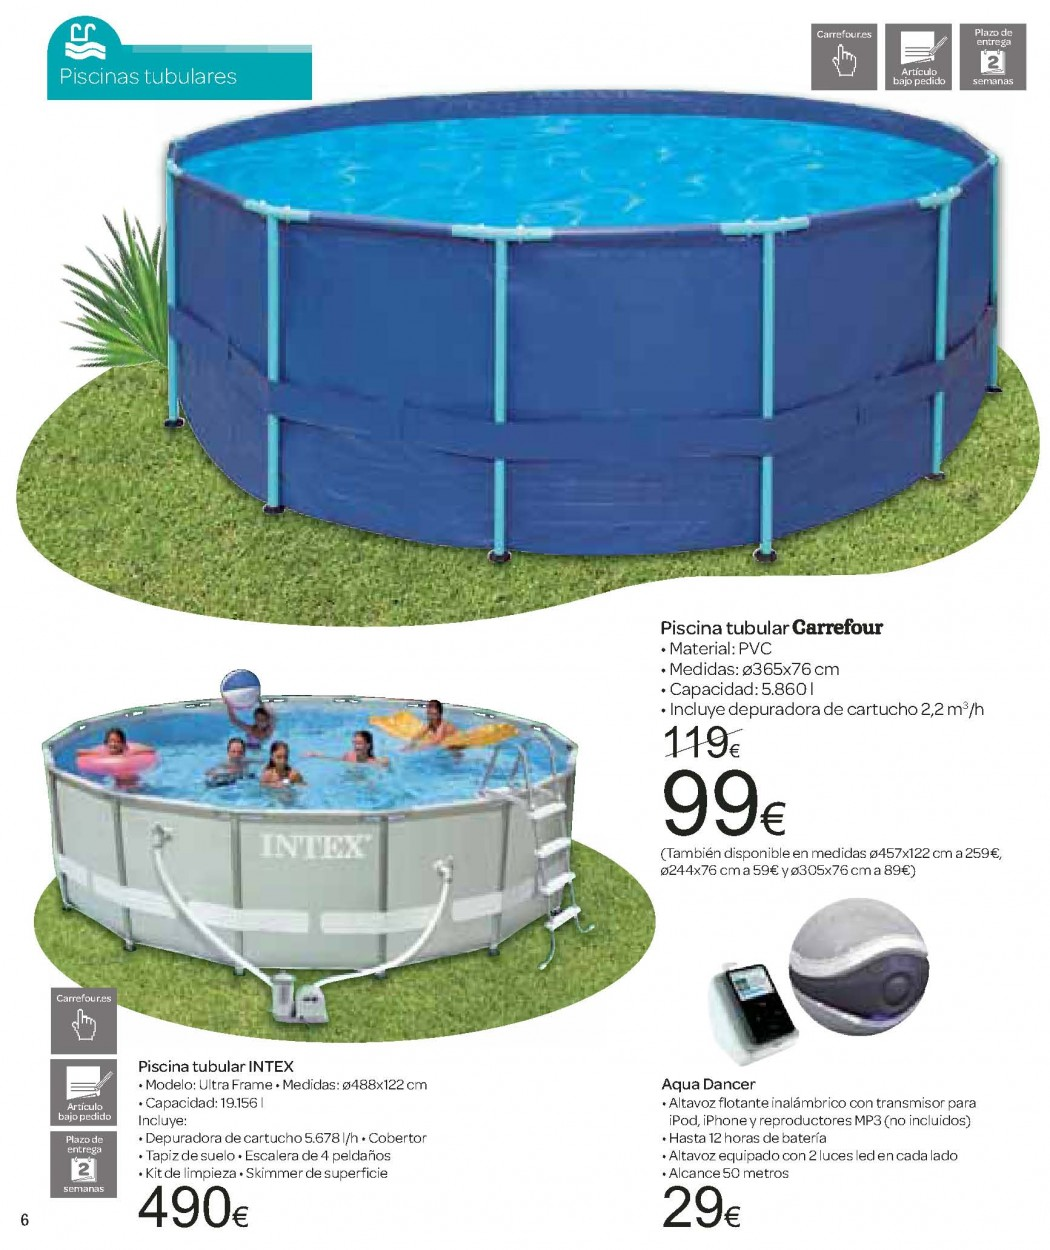 Catalogo carrefour junio 2012 especial piscinas y jardin for Piscinas de plastico carrefour